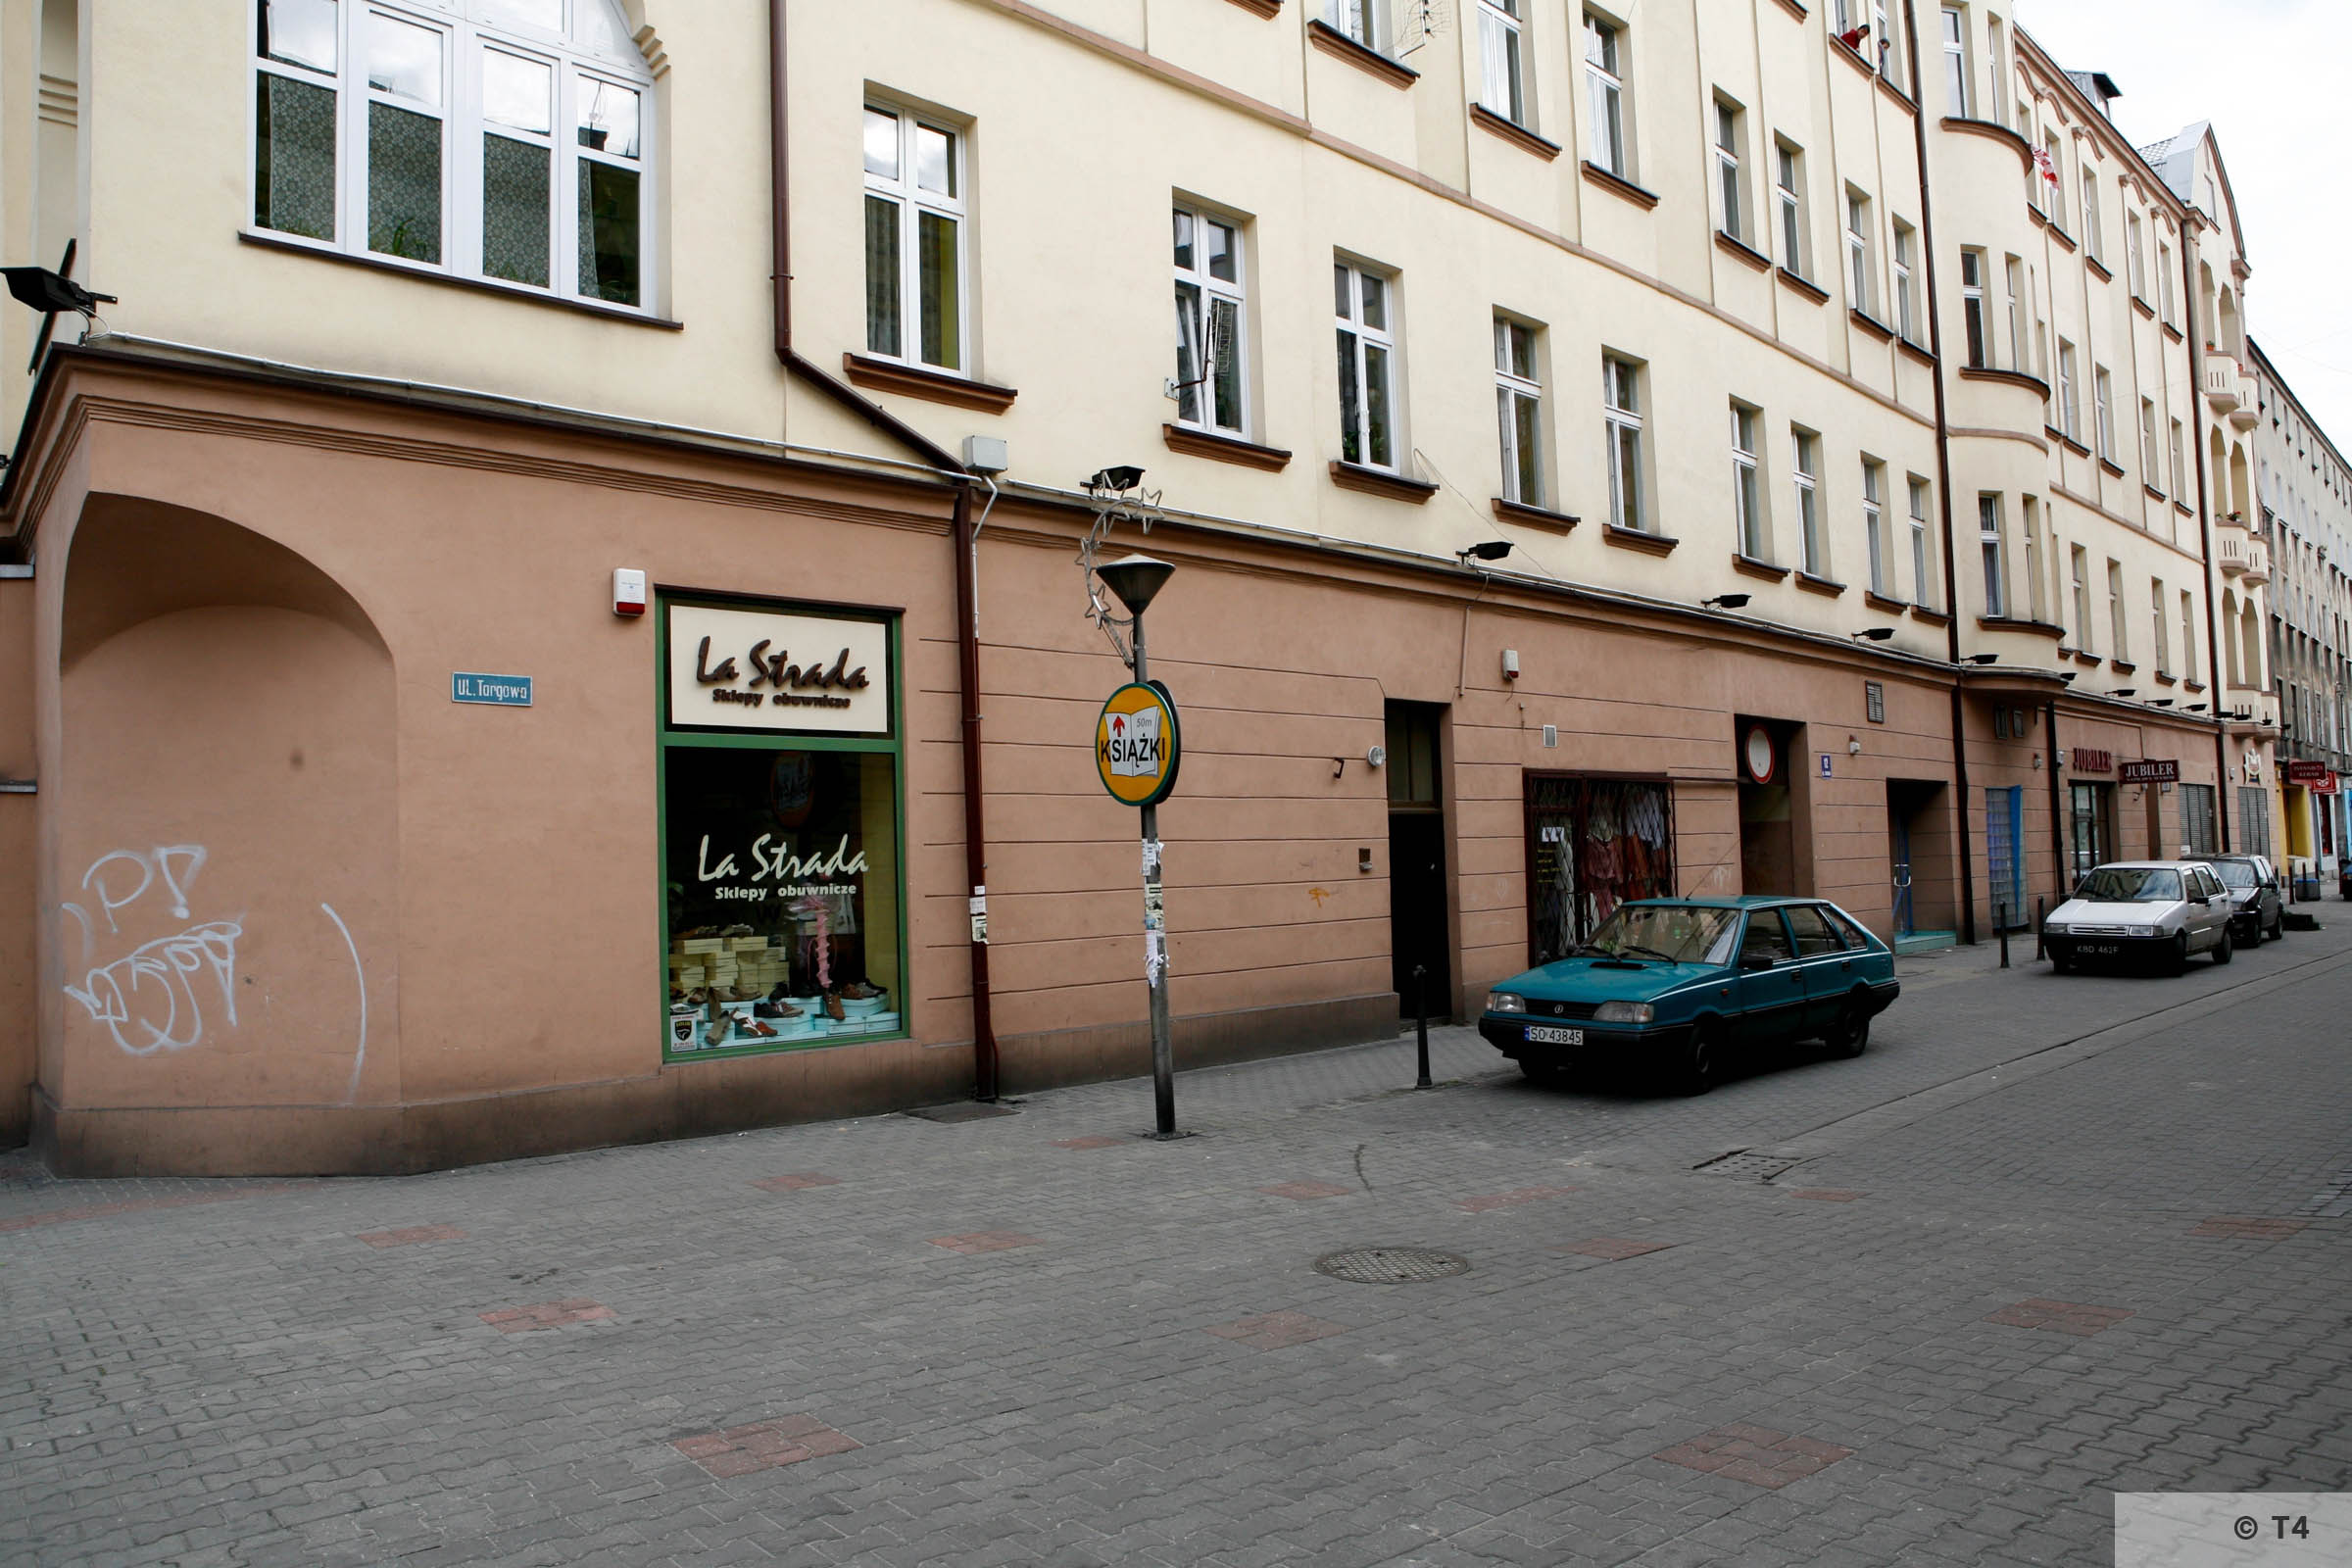 Former Central Jewish Communities Headquarters in Sosnowiec. T4 2005 6361